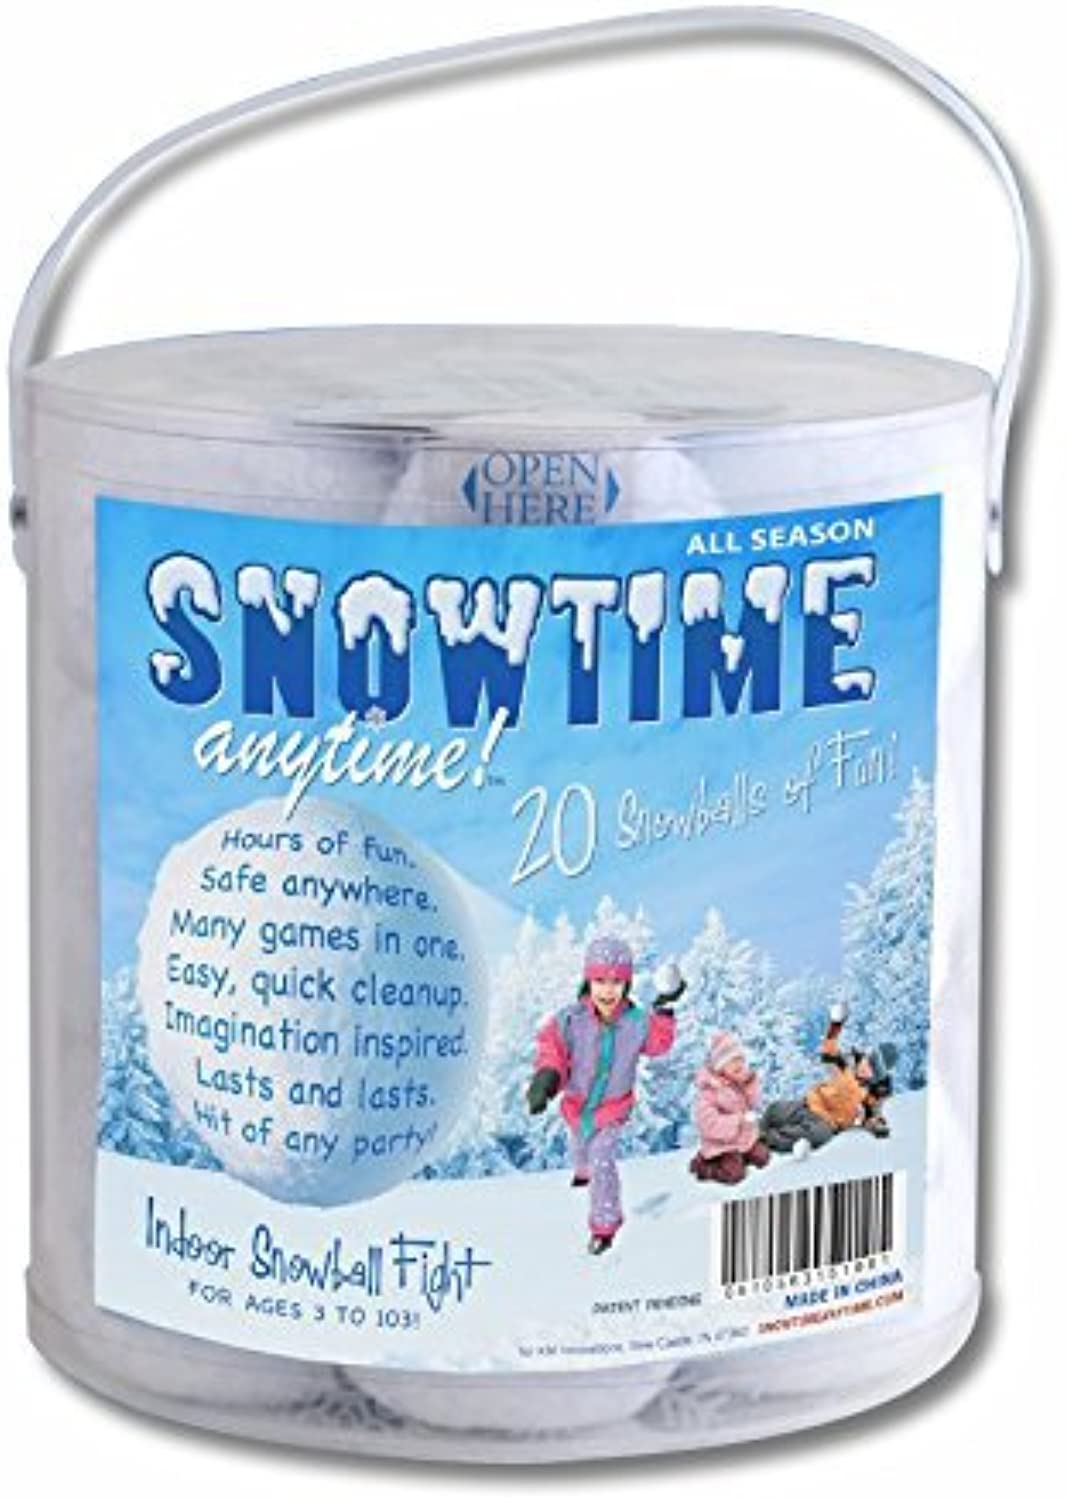 Indoor Snowball Fight SNOWTIME ANYTIME by SNOWTIME ANYTIME